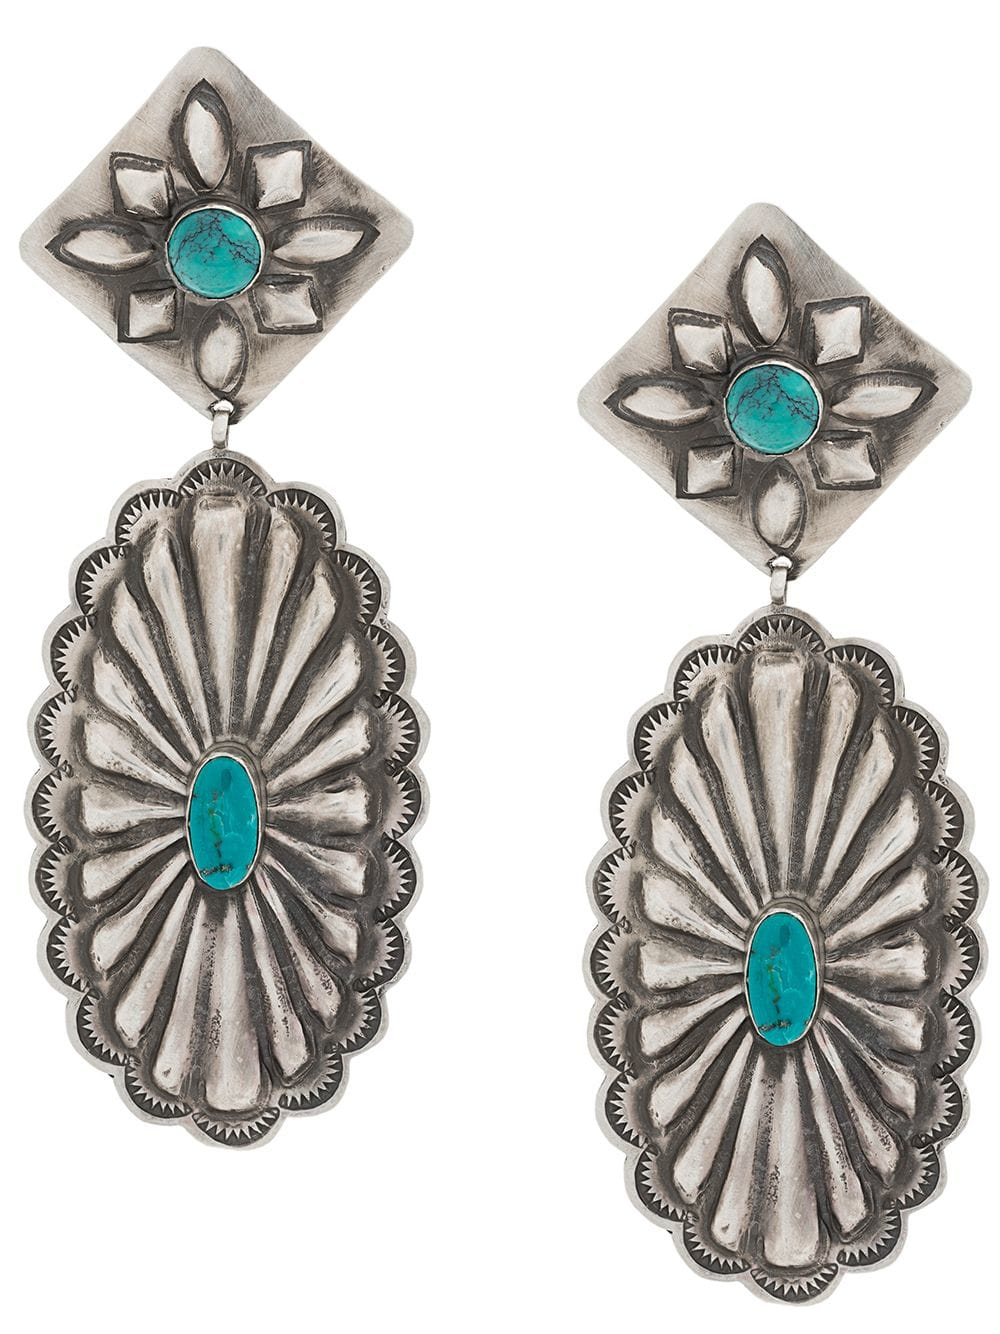 3b66ea8f4 jessie-western-etched-drop-earrings-silver-farfetch-com-photo.jpg?1540616797